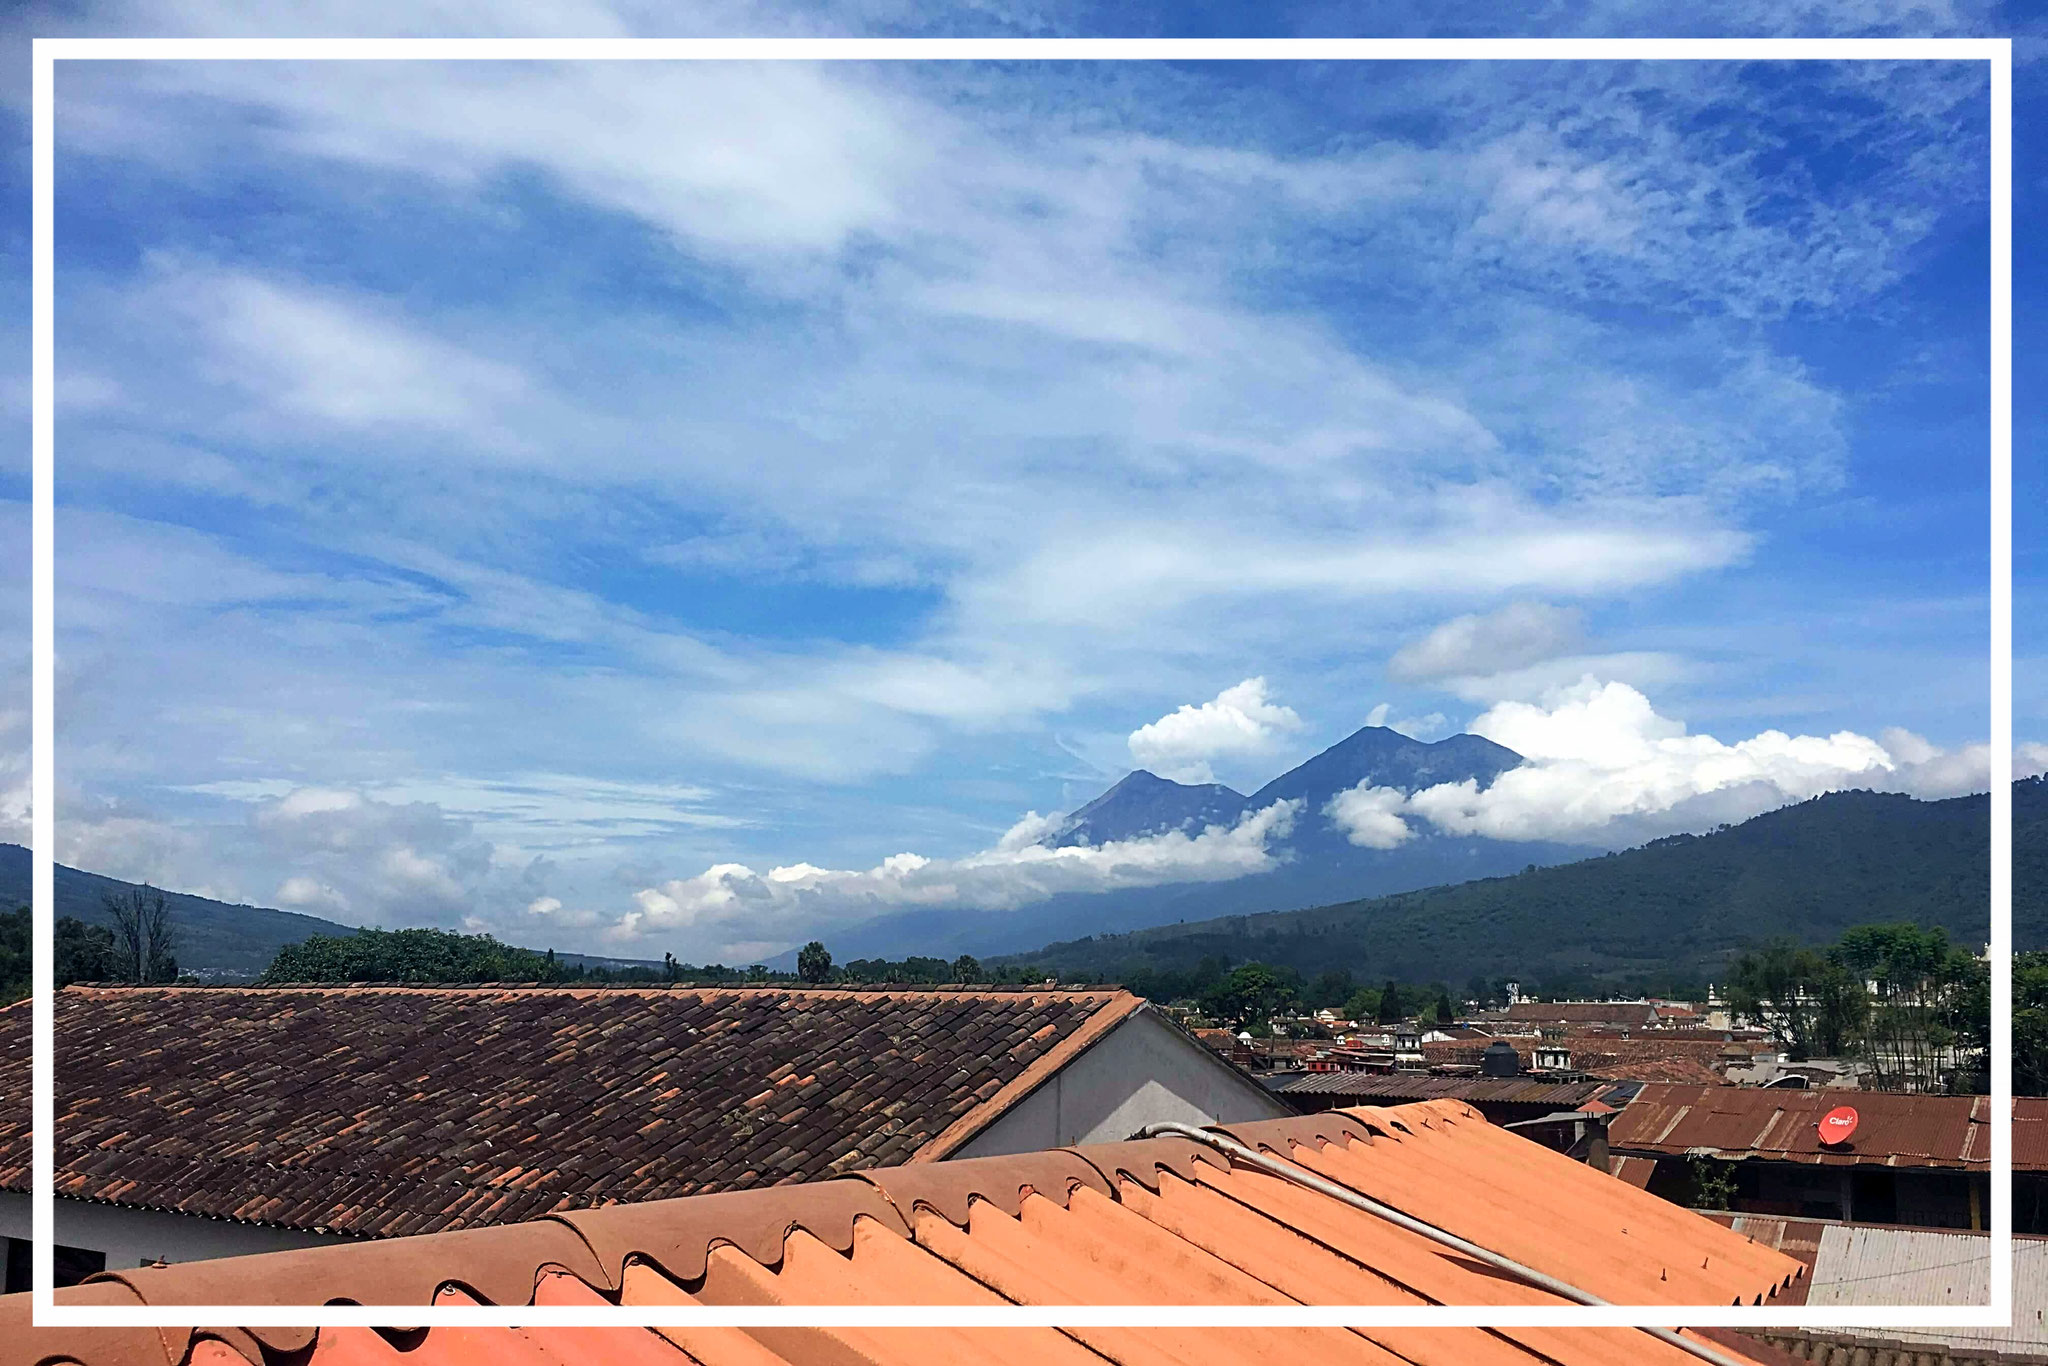 On the left is the volcano Fuego, which erupted on June 3rd 2018 ...